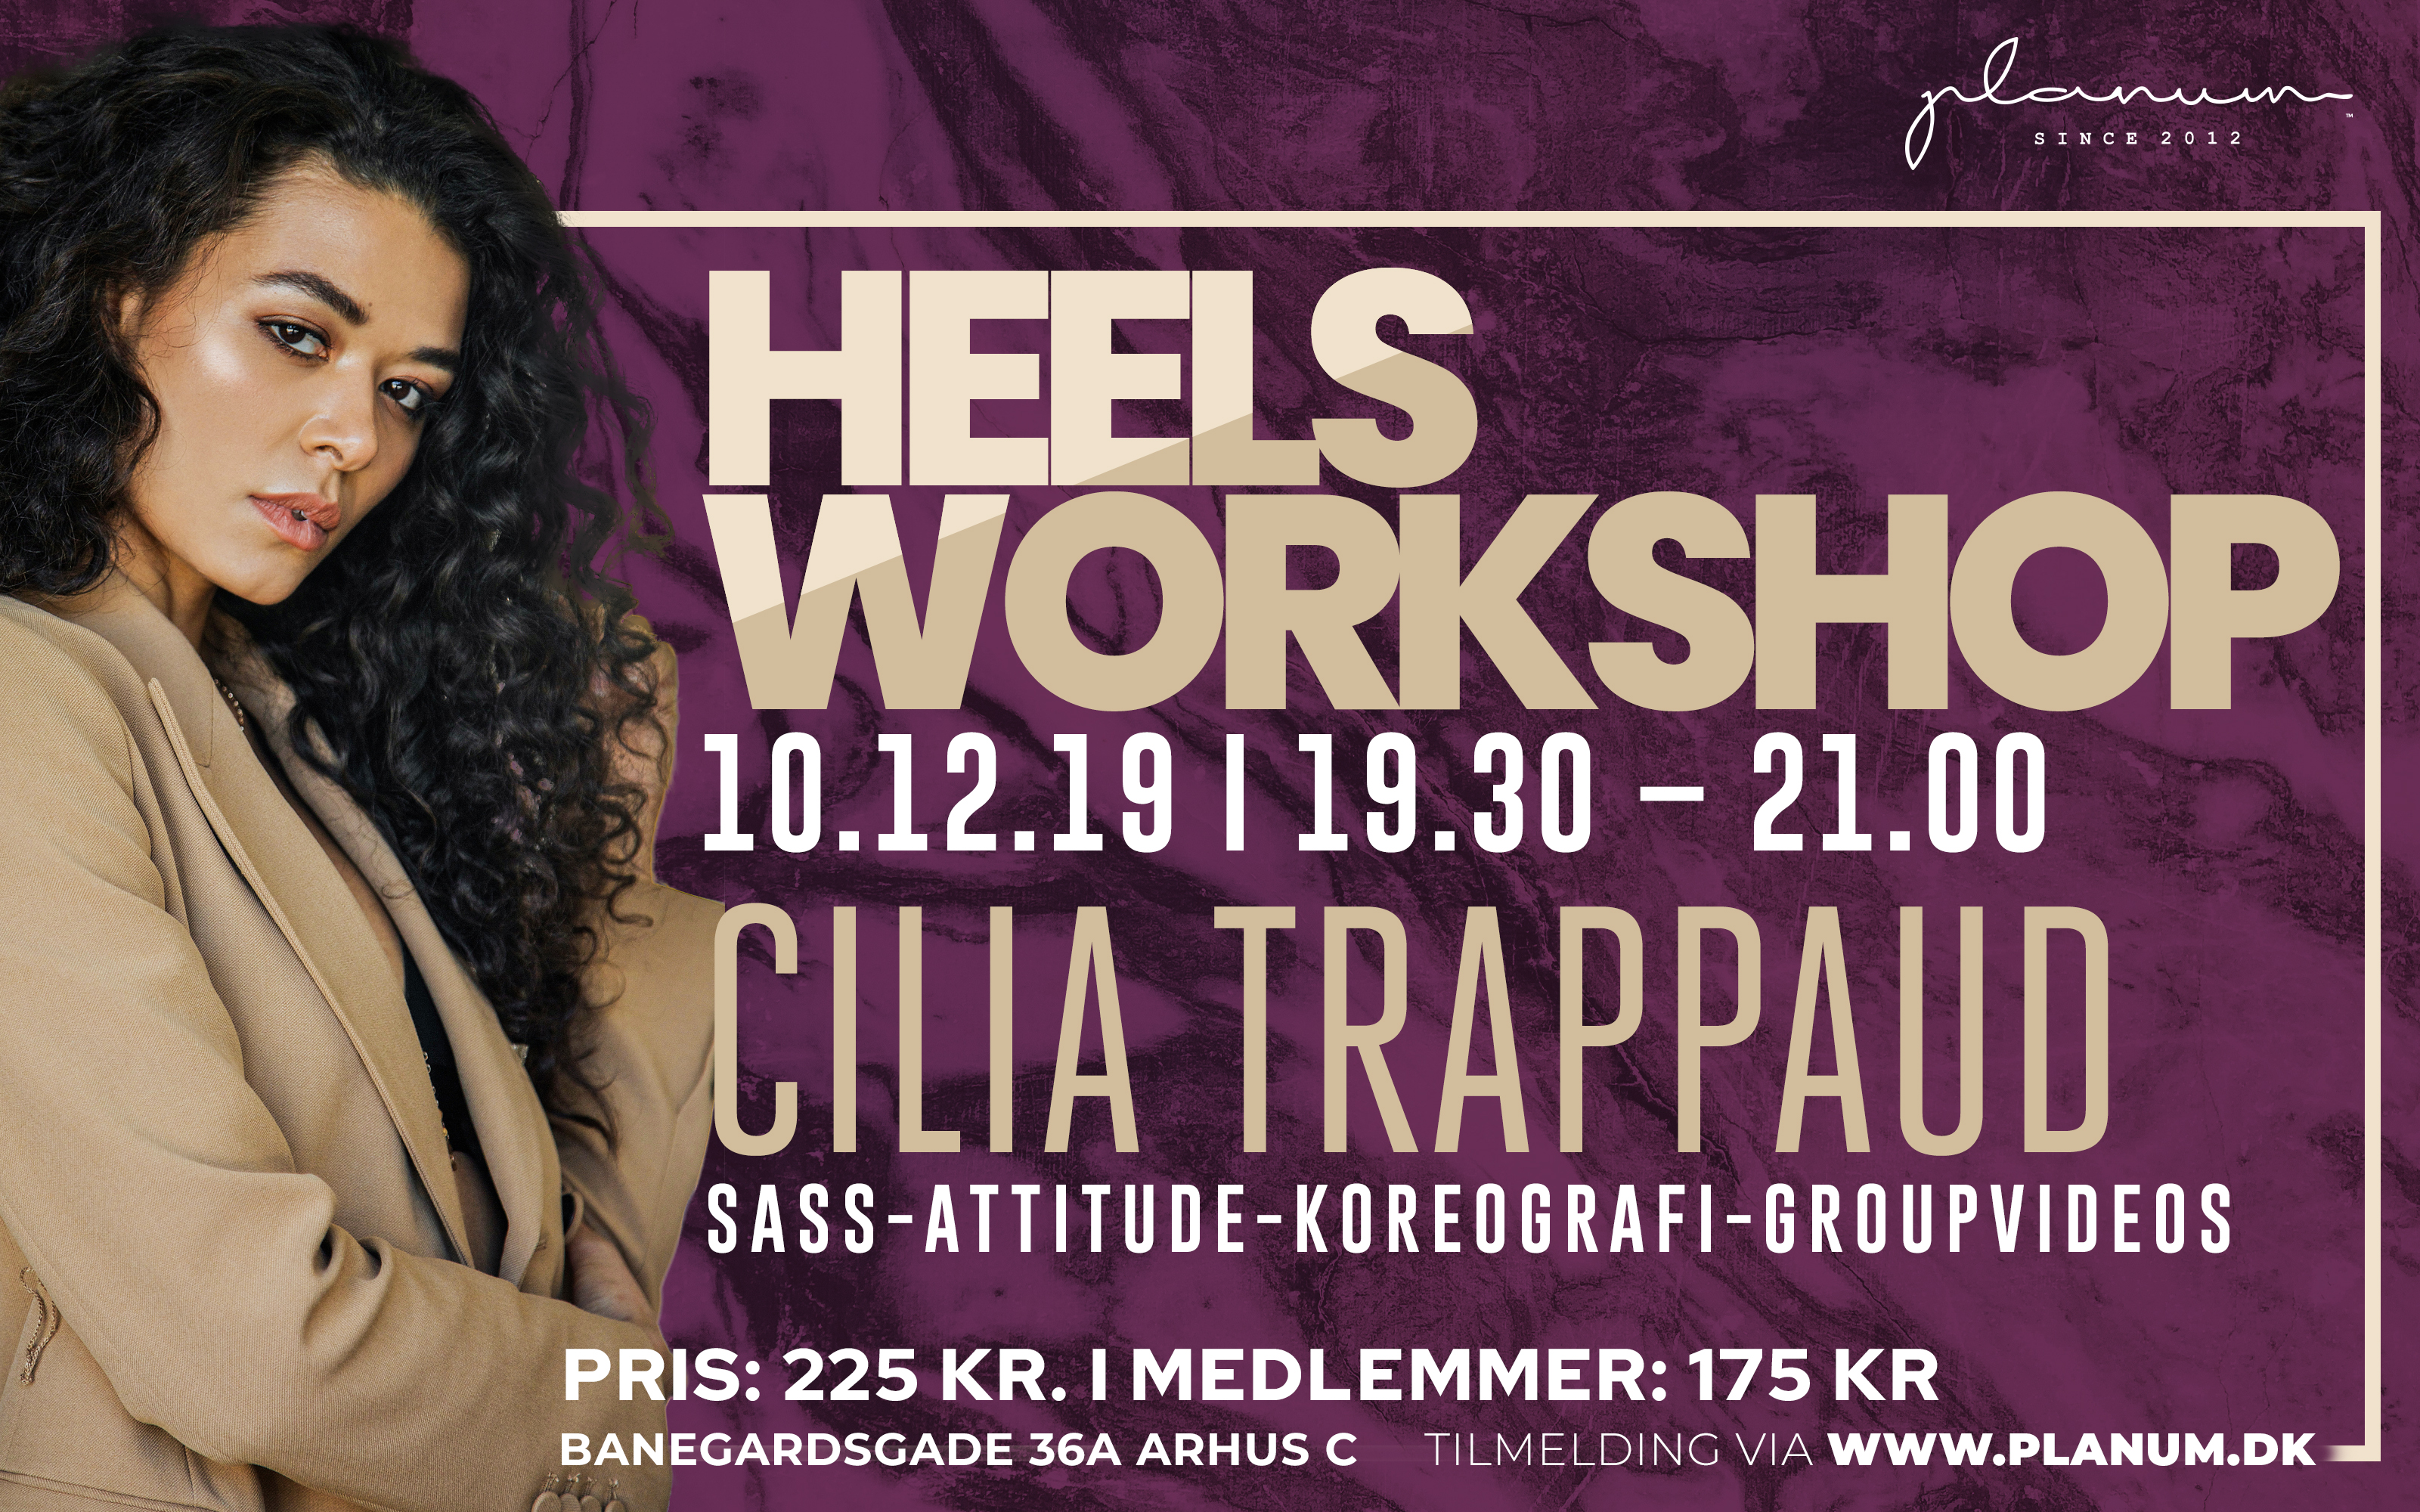 Heels Workshop x Cilia Trappaud